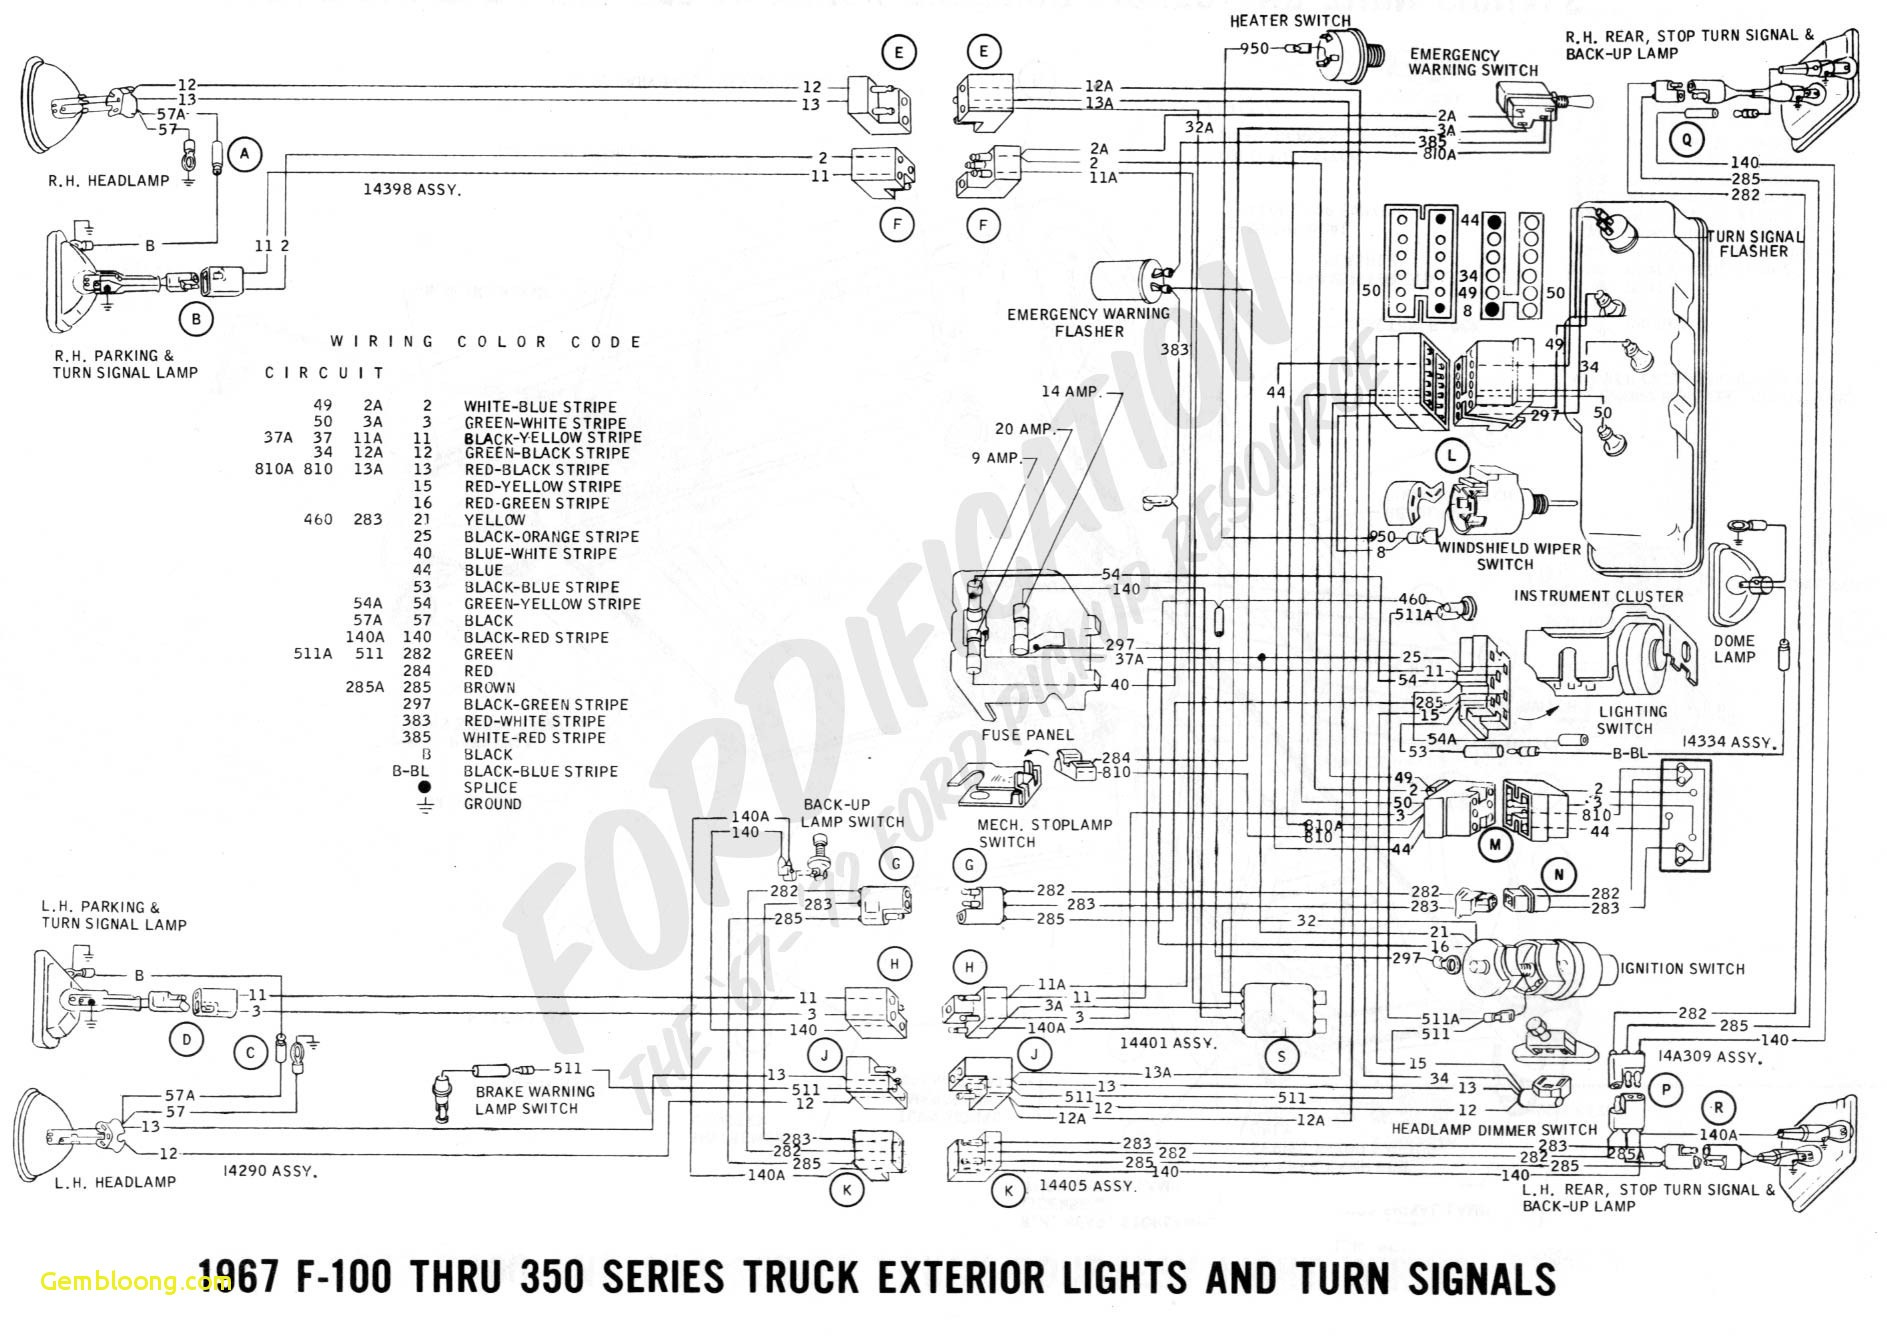 Engine Diagrams for Cars Download ford Trucks Wiring Diagrams ford F150 Wiring Diagrams Best Of Engine Diagrams for Cars